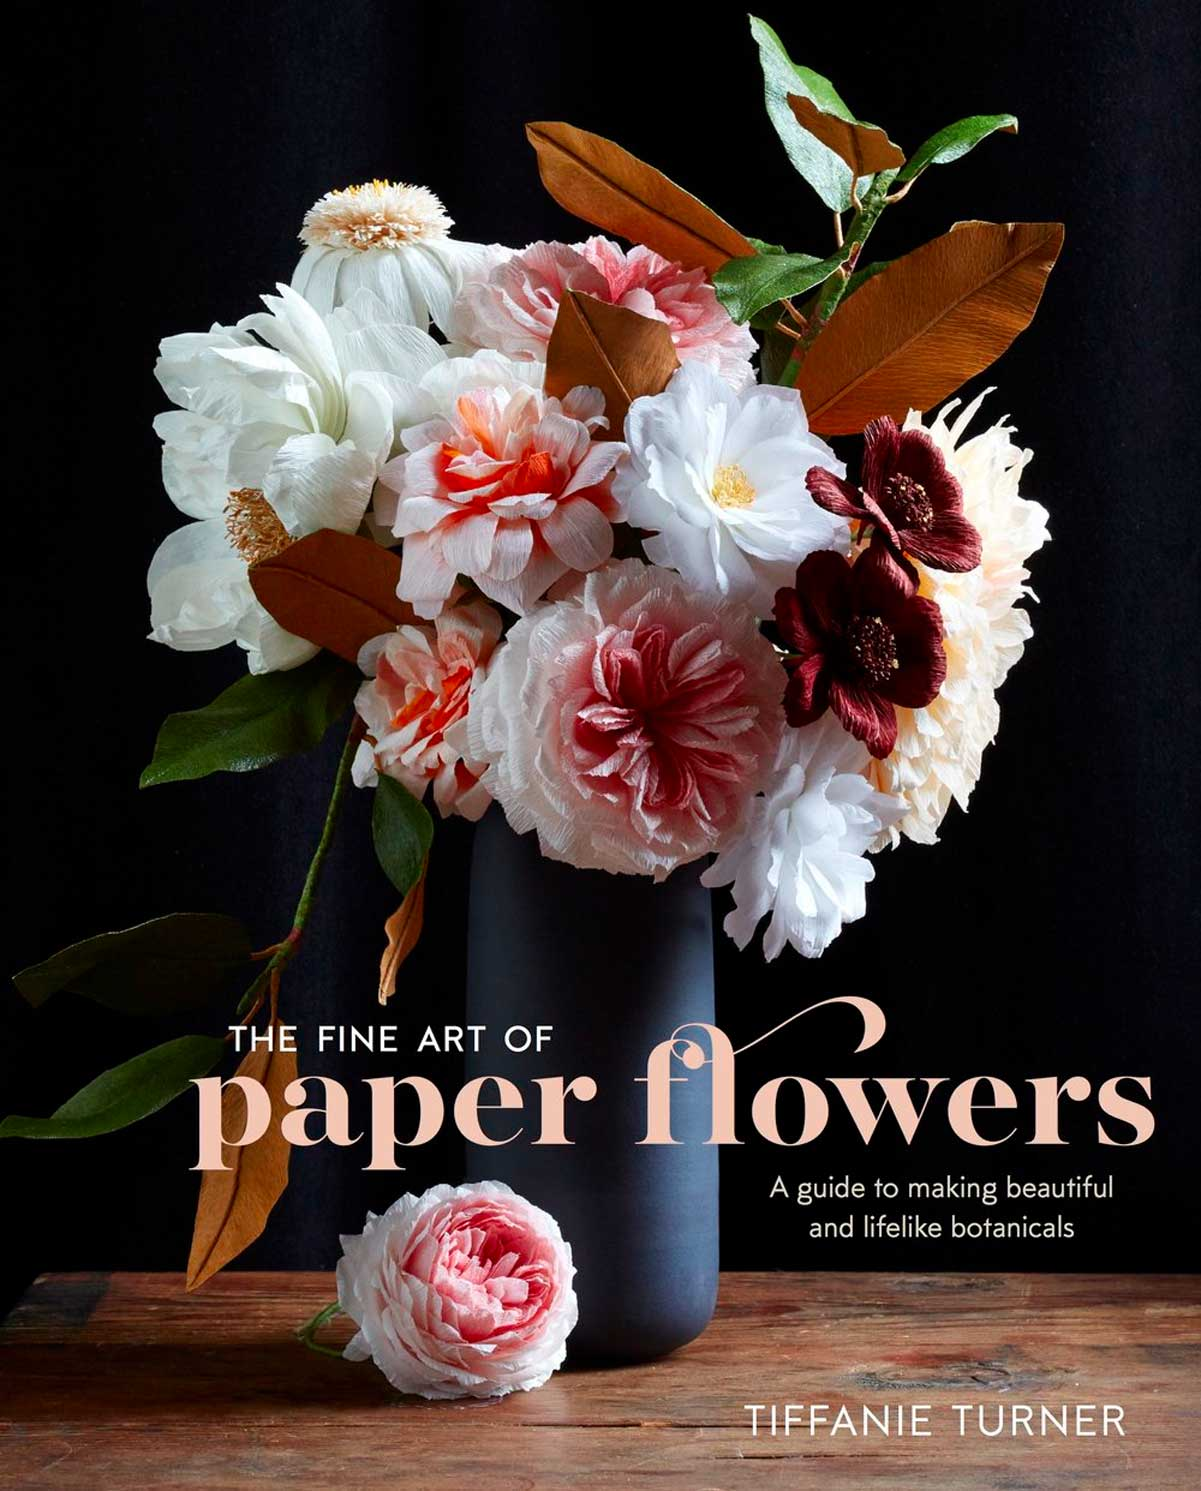 Tiffanie Turner's Debut Book Shows How To Create Her Masterful Paper Flowers (8 pics)